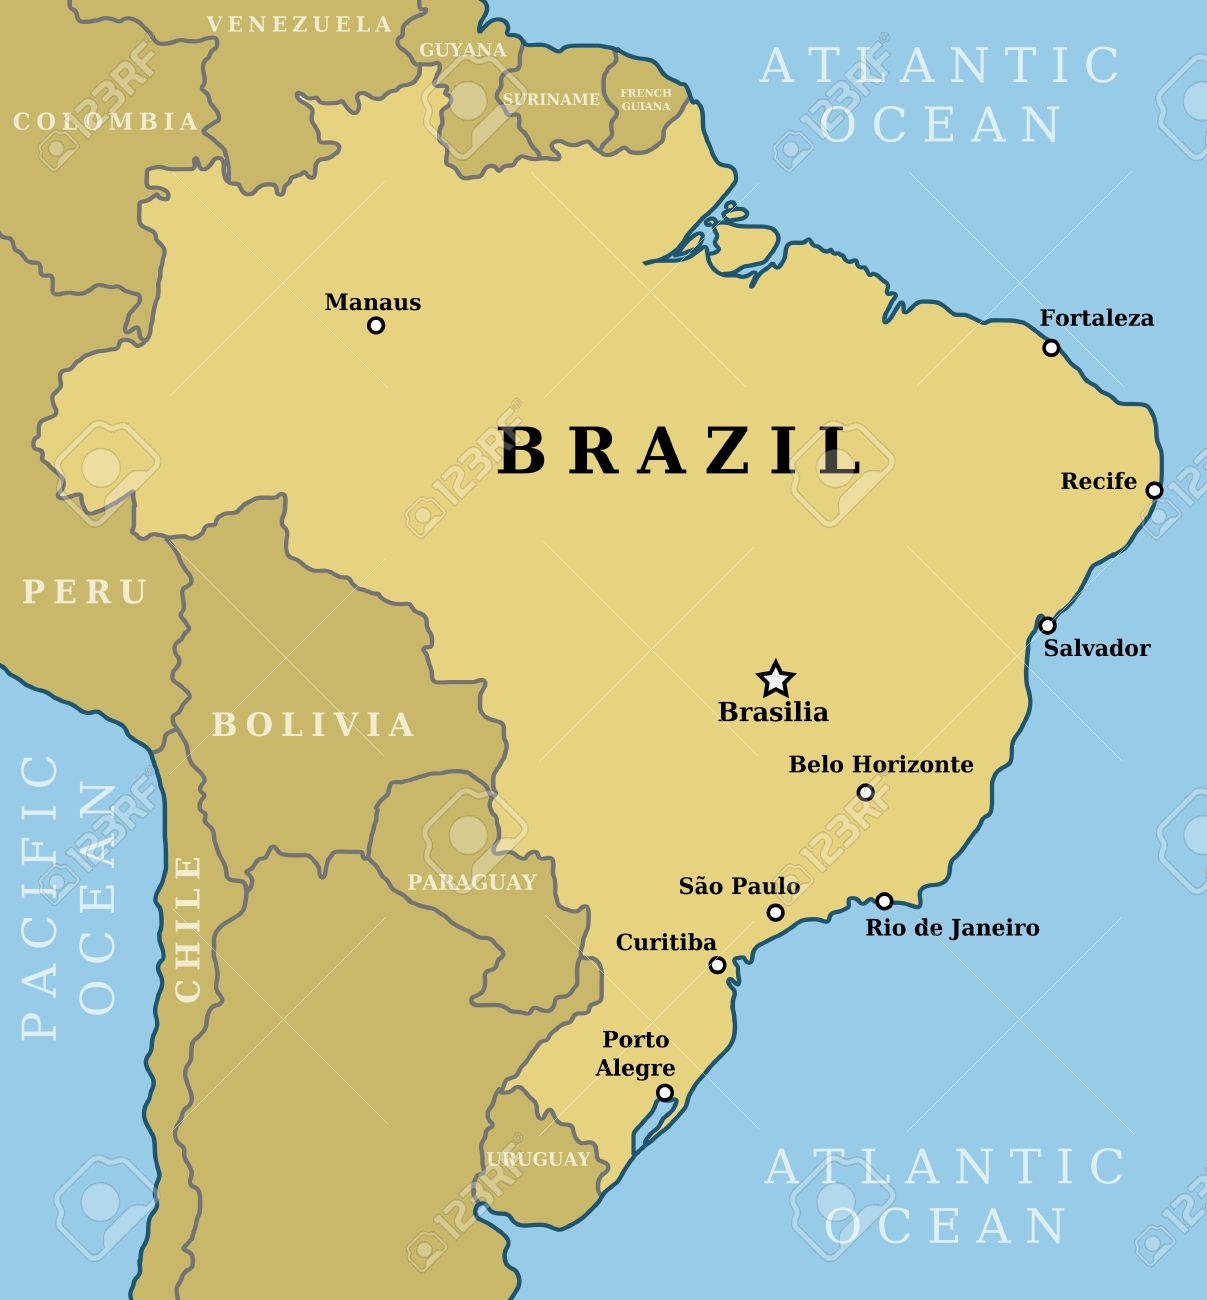 Usa Canada Major Cities Map Brazil Driving Directions With - Map of cities in usa and canada